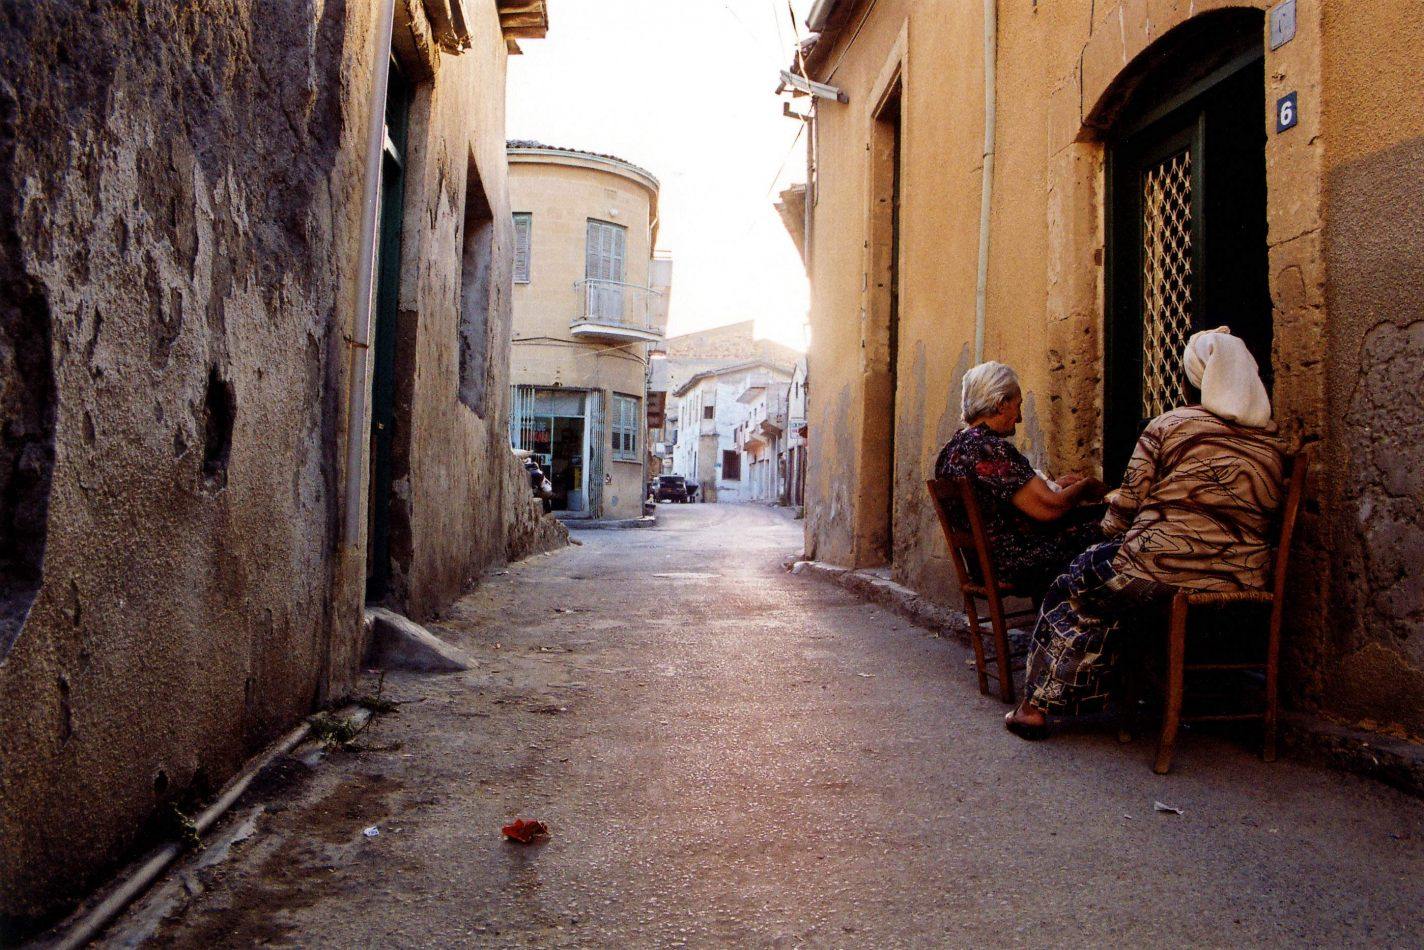 Anthony Ellis Photography: Ruins of the Missing - Old Turkish Women Watching Television